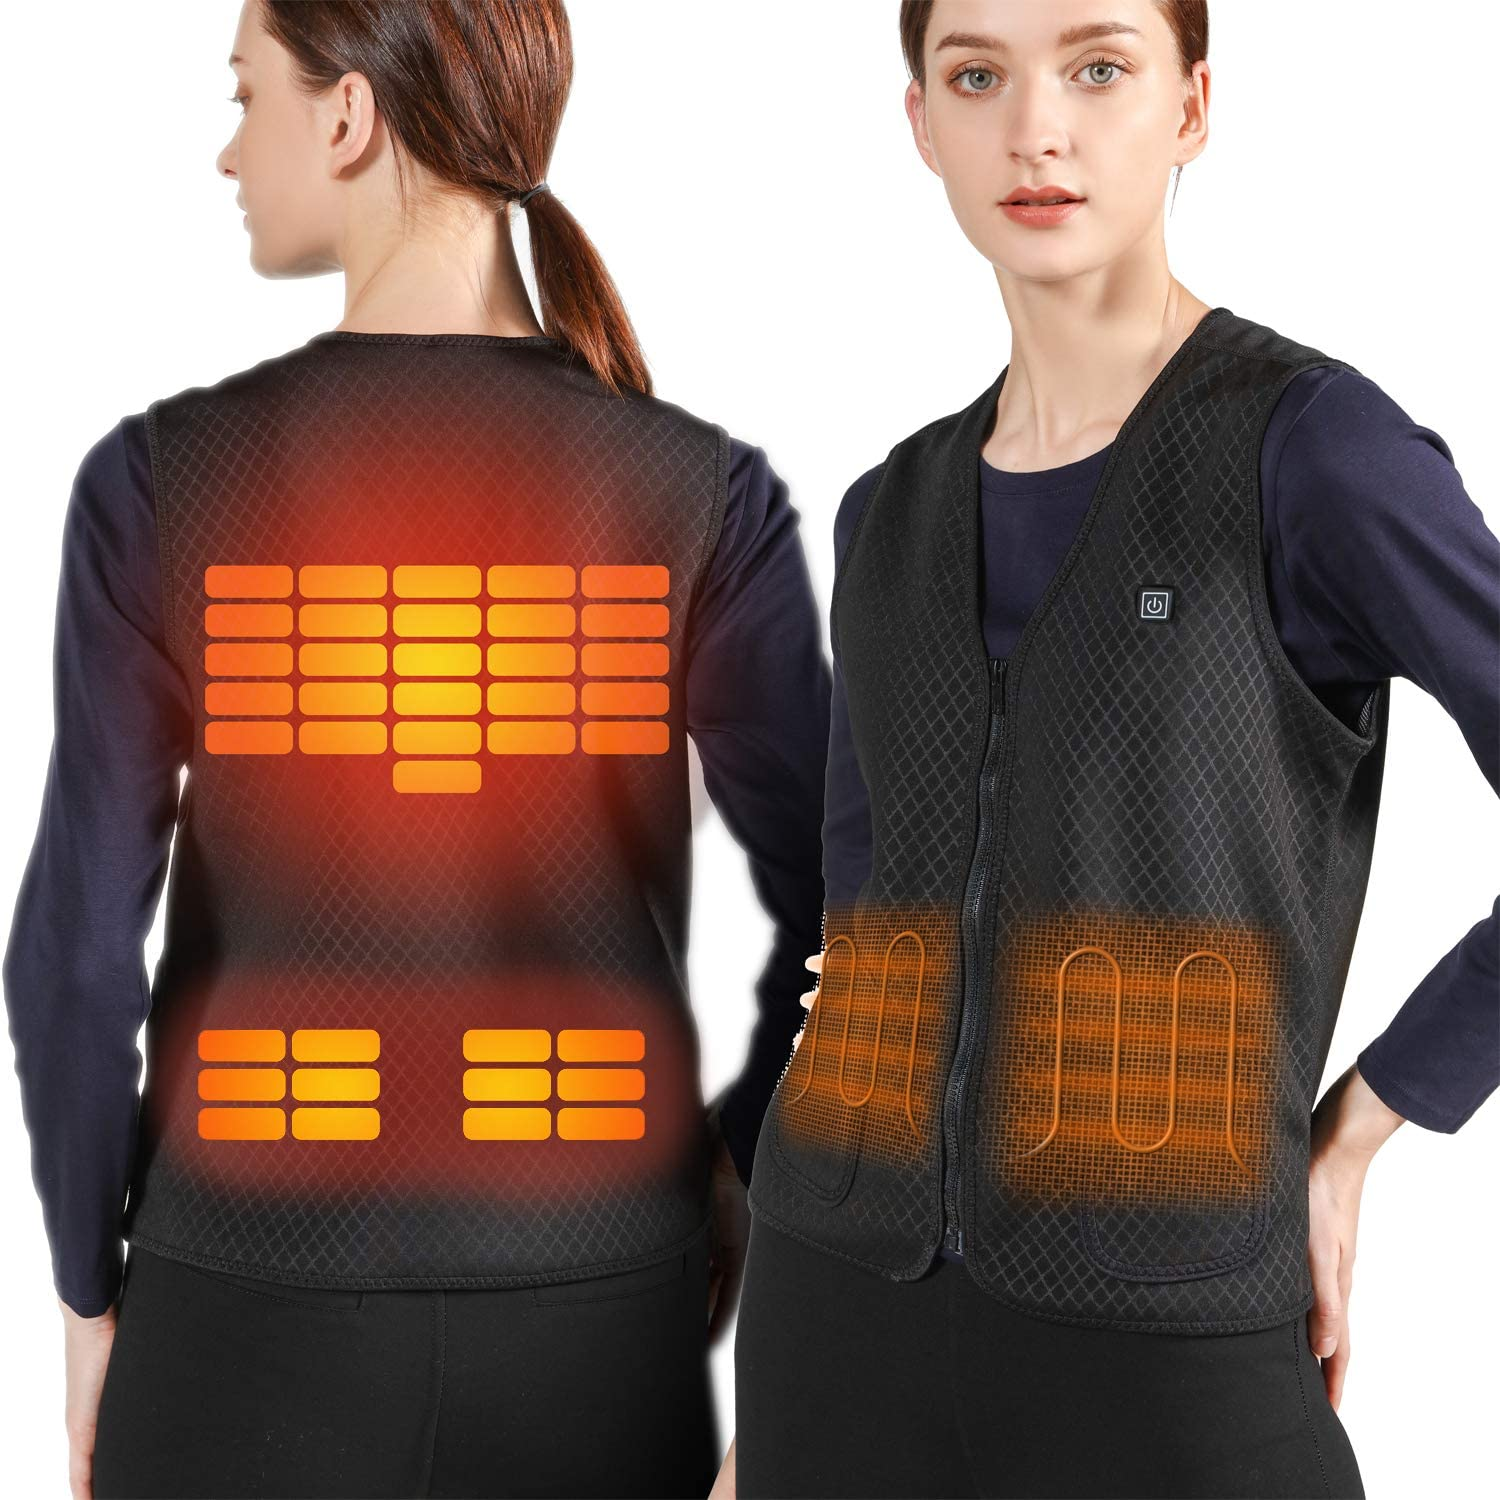 VALLEYWIND Lightweight Heated Vest, 5V USB Charging Warm Vest for Outdoor Camping Hiking Golf, Washable Heated Jacket Clothes Built-in 5 Pcs Heating Pad for Men and Women, Battery Not Included